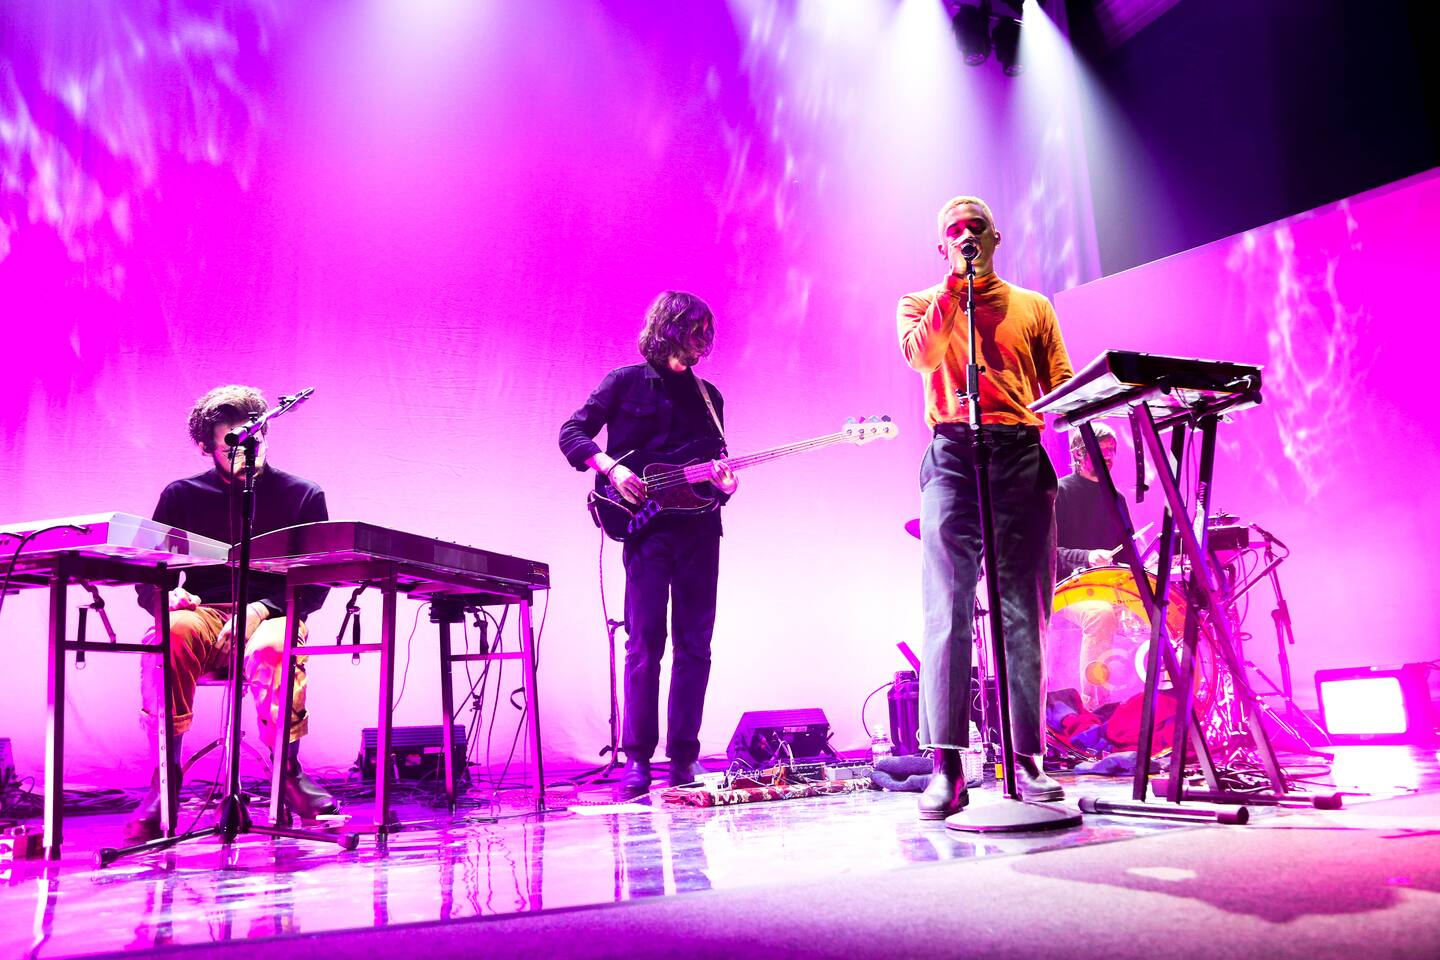 Chaz Bear of Toro y Moi proves he's so much more than chillwave